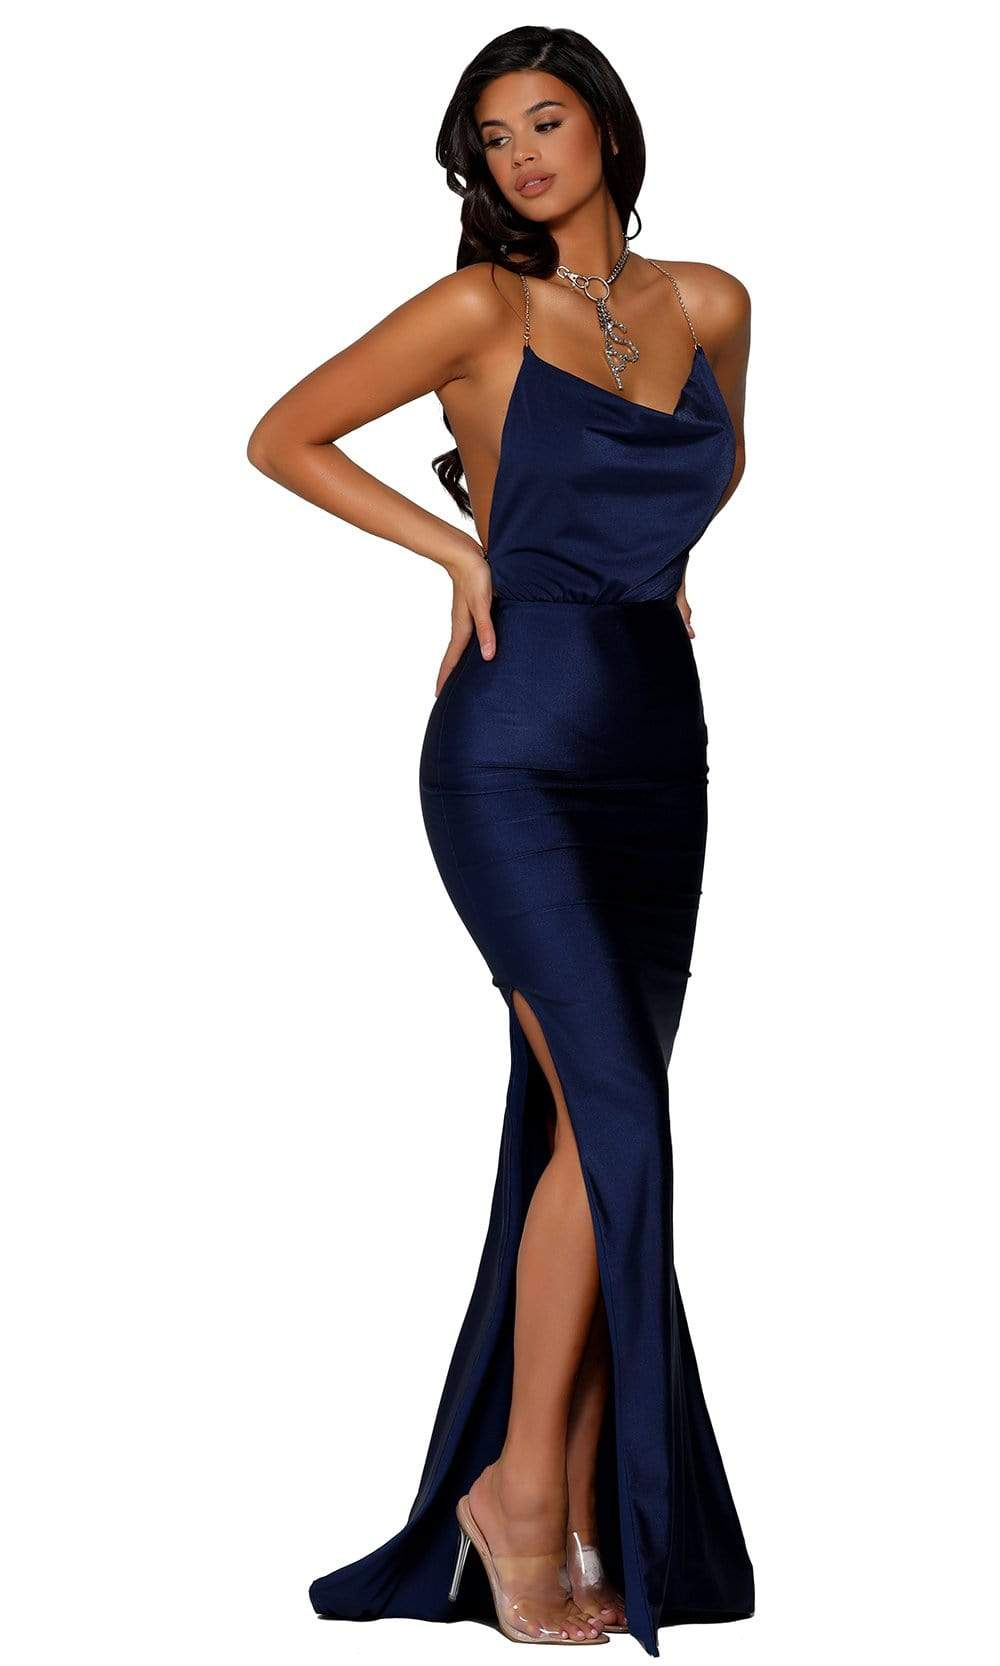 Portia and Scarlett - PS6319 Sleeveless Cowl Neck Metallic Strap Gown from Portia and Scarlett